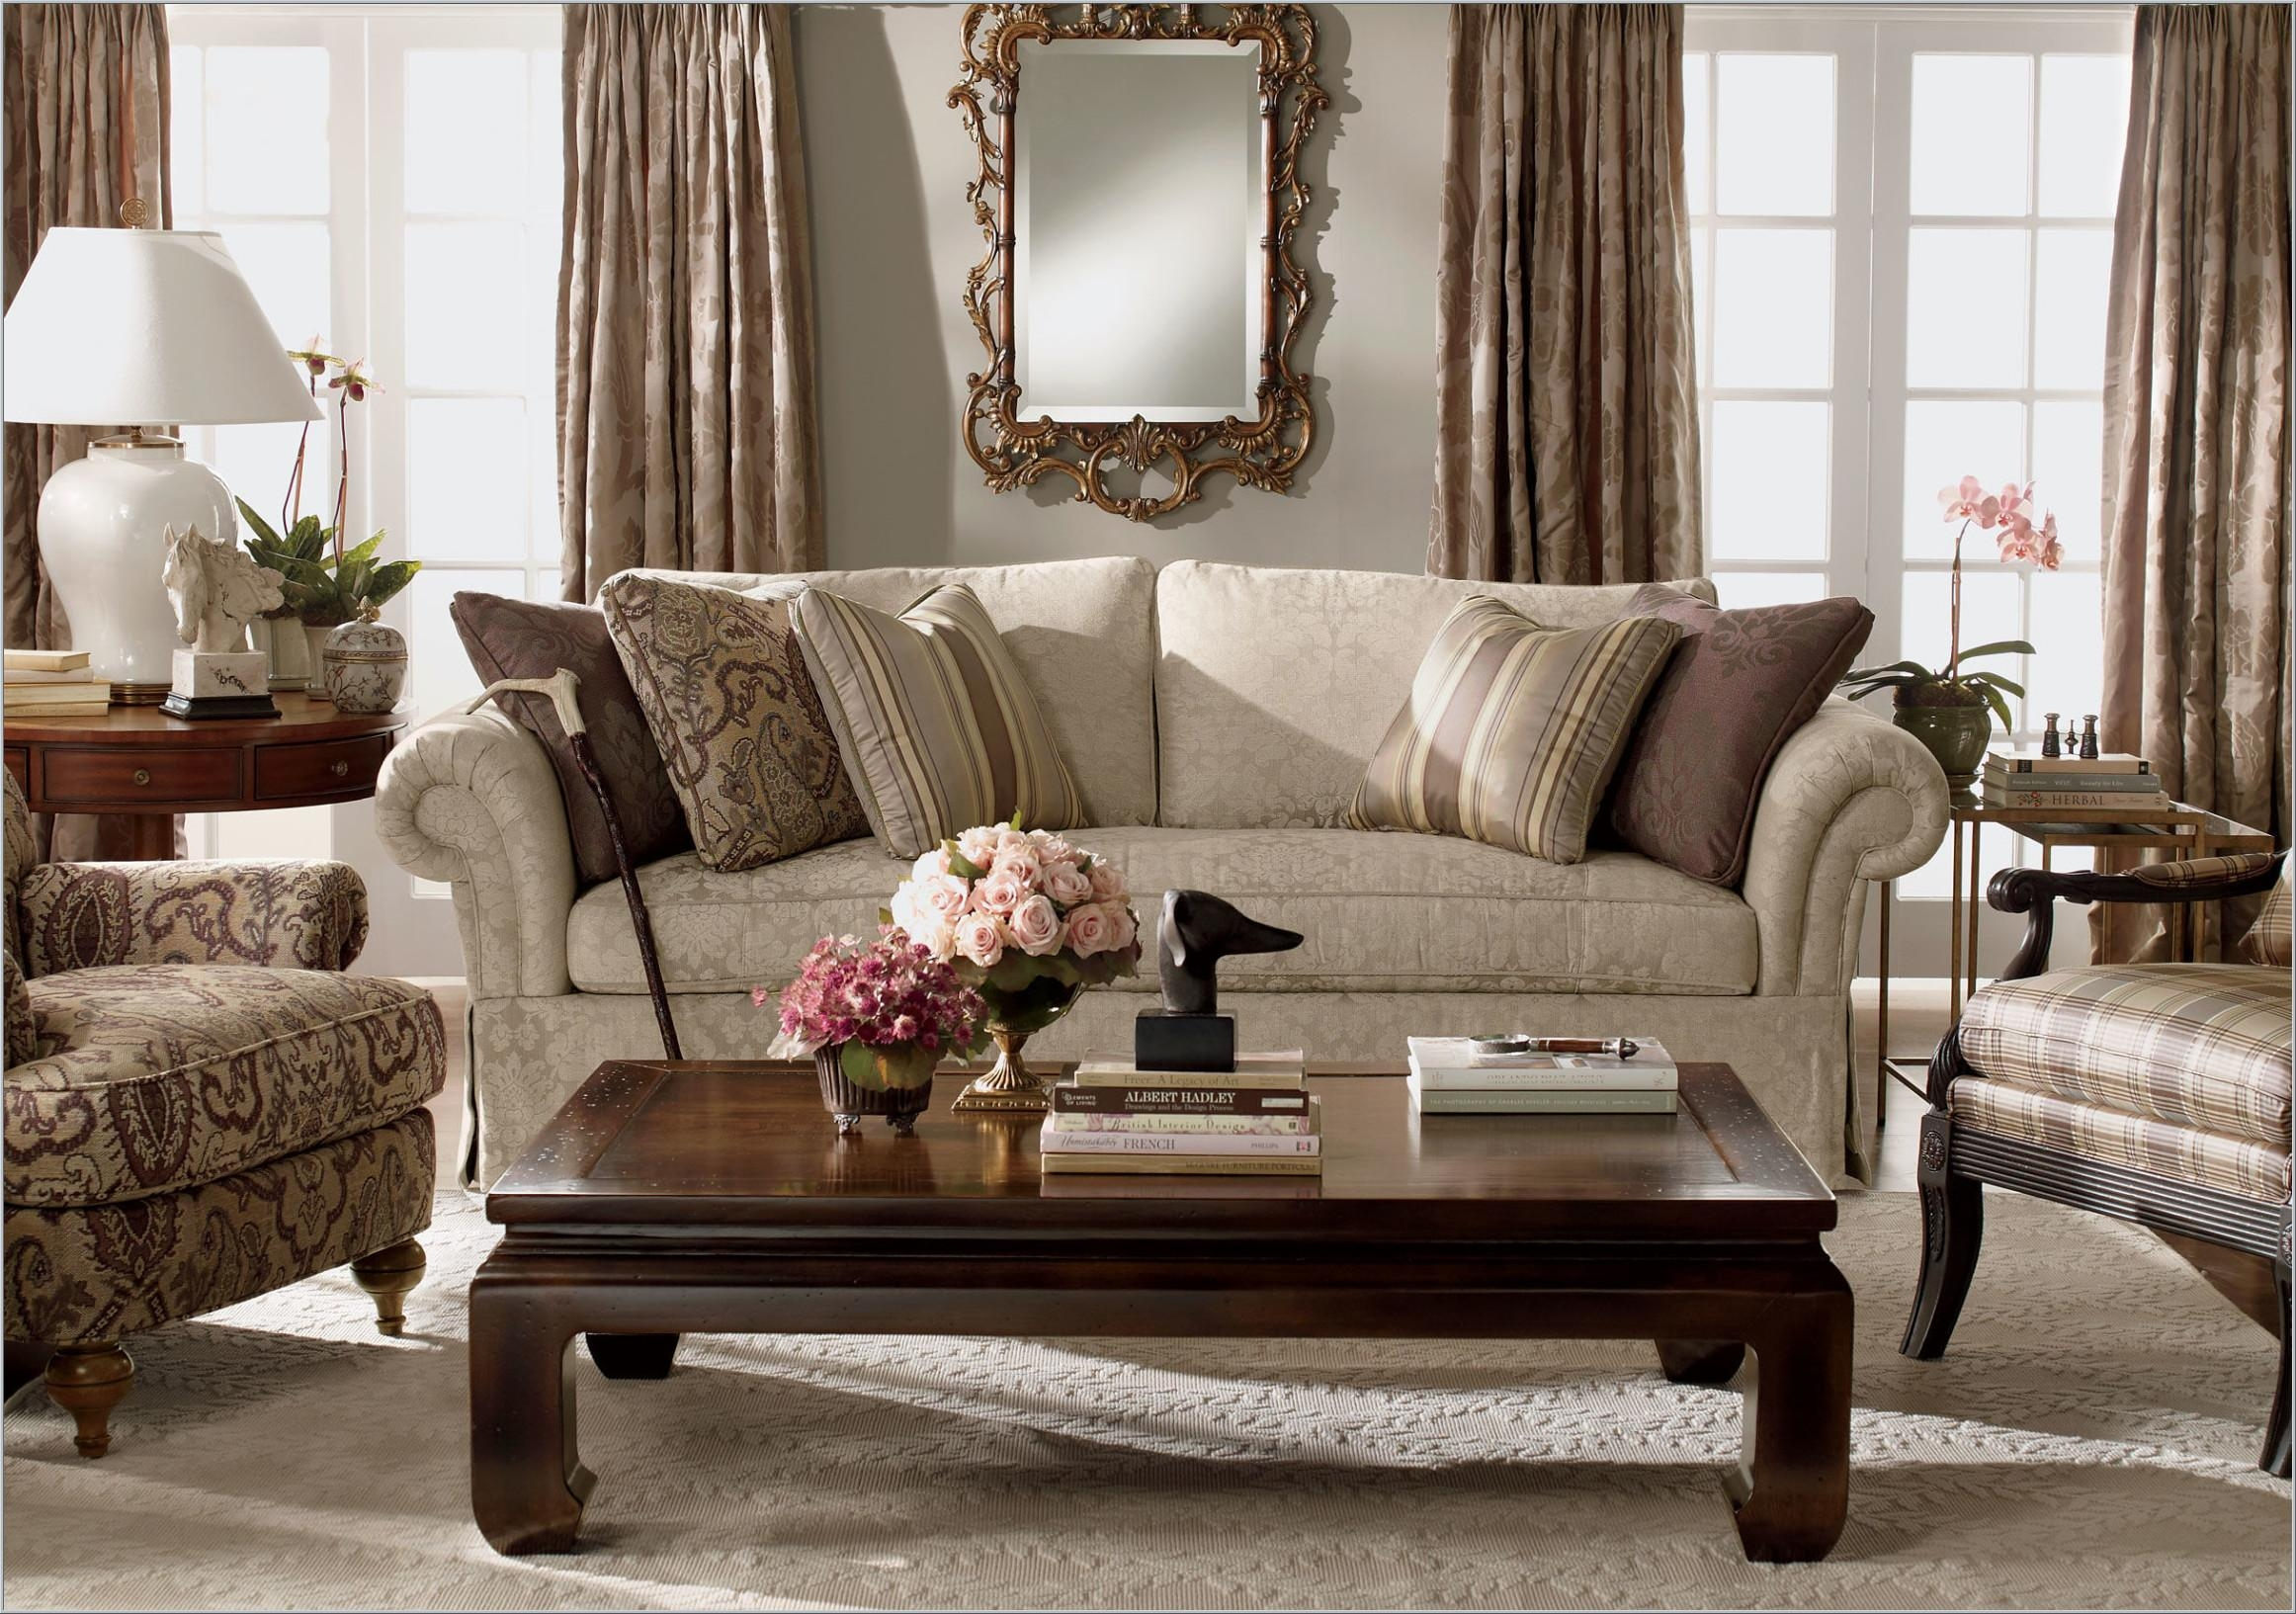 Ethan Allen Whitney Sofa With Inspiration Ideas 28595 | Kengire With Ethan Allen Whitney Sofas (View 5 of 20)